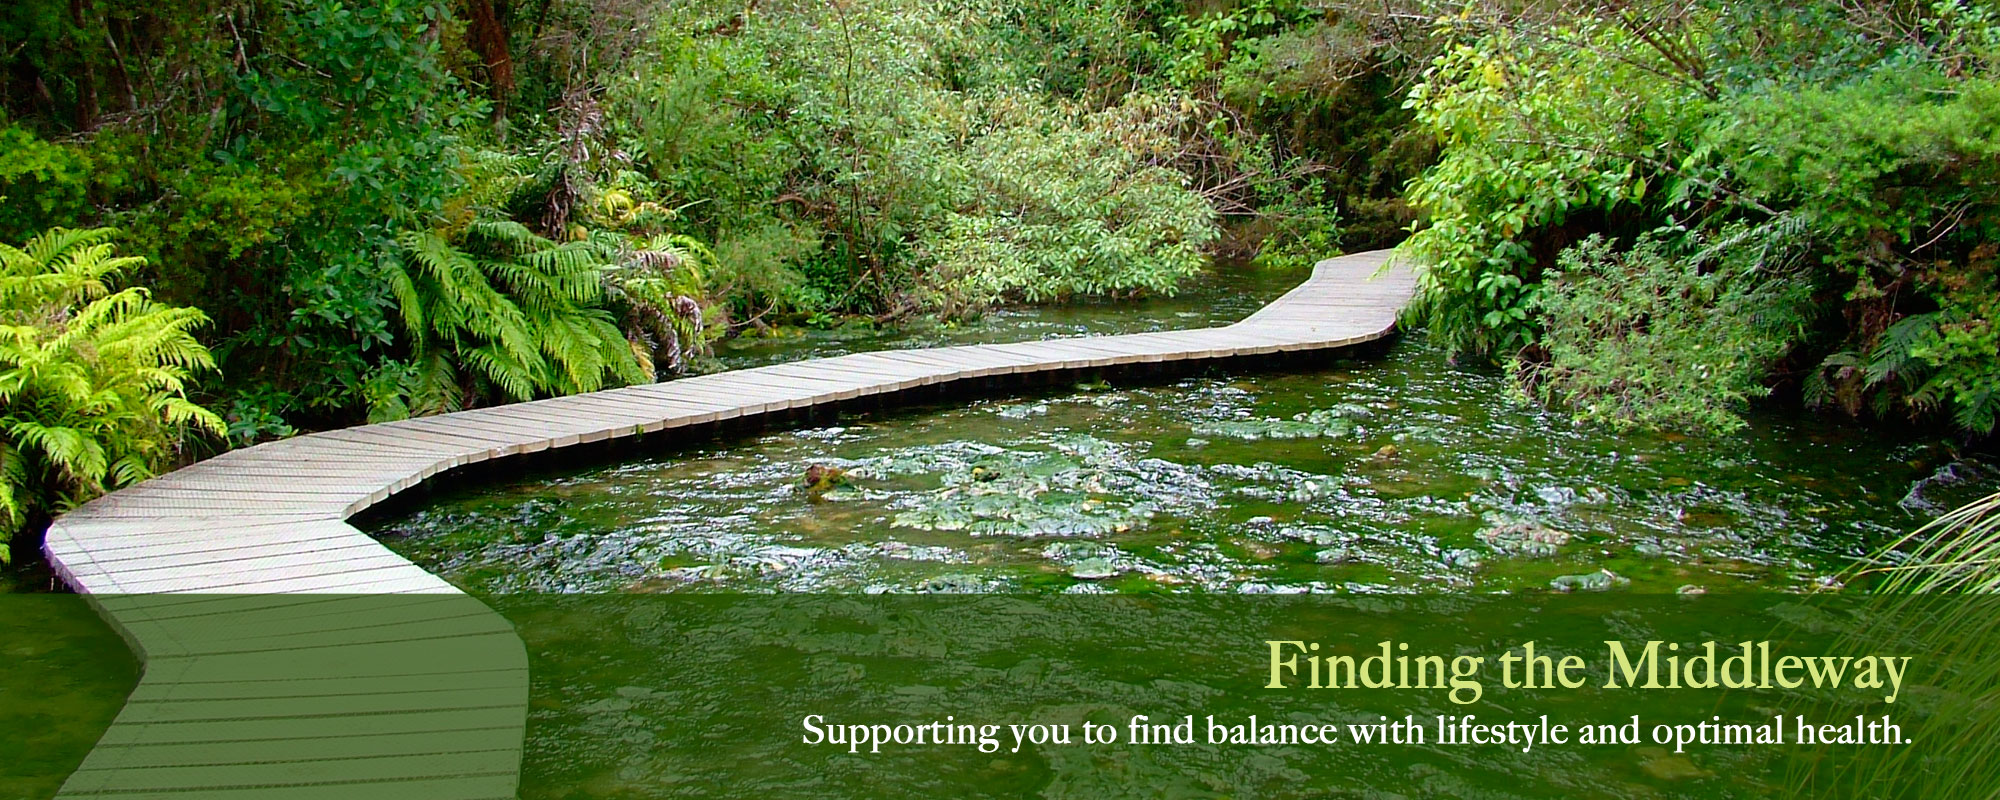 Finding The Middleway ... Supporting You To Find Your Balance Place With Lifestyle And Optimal Health